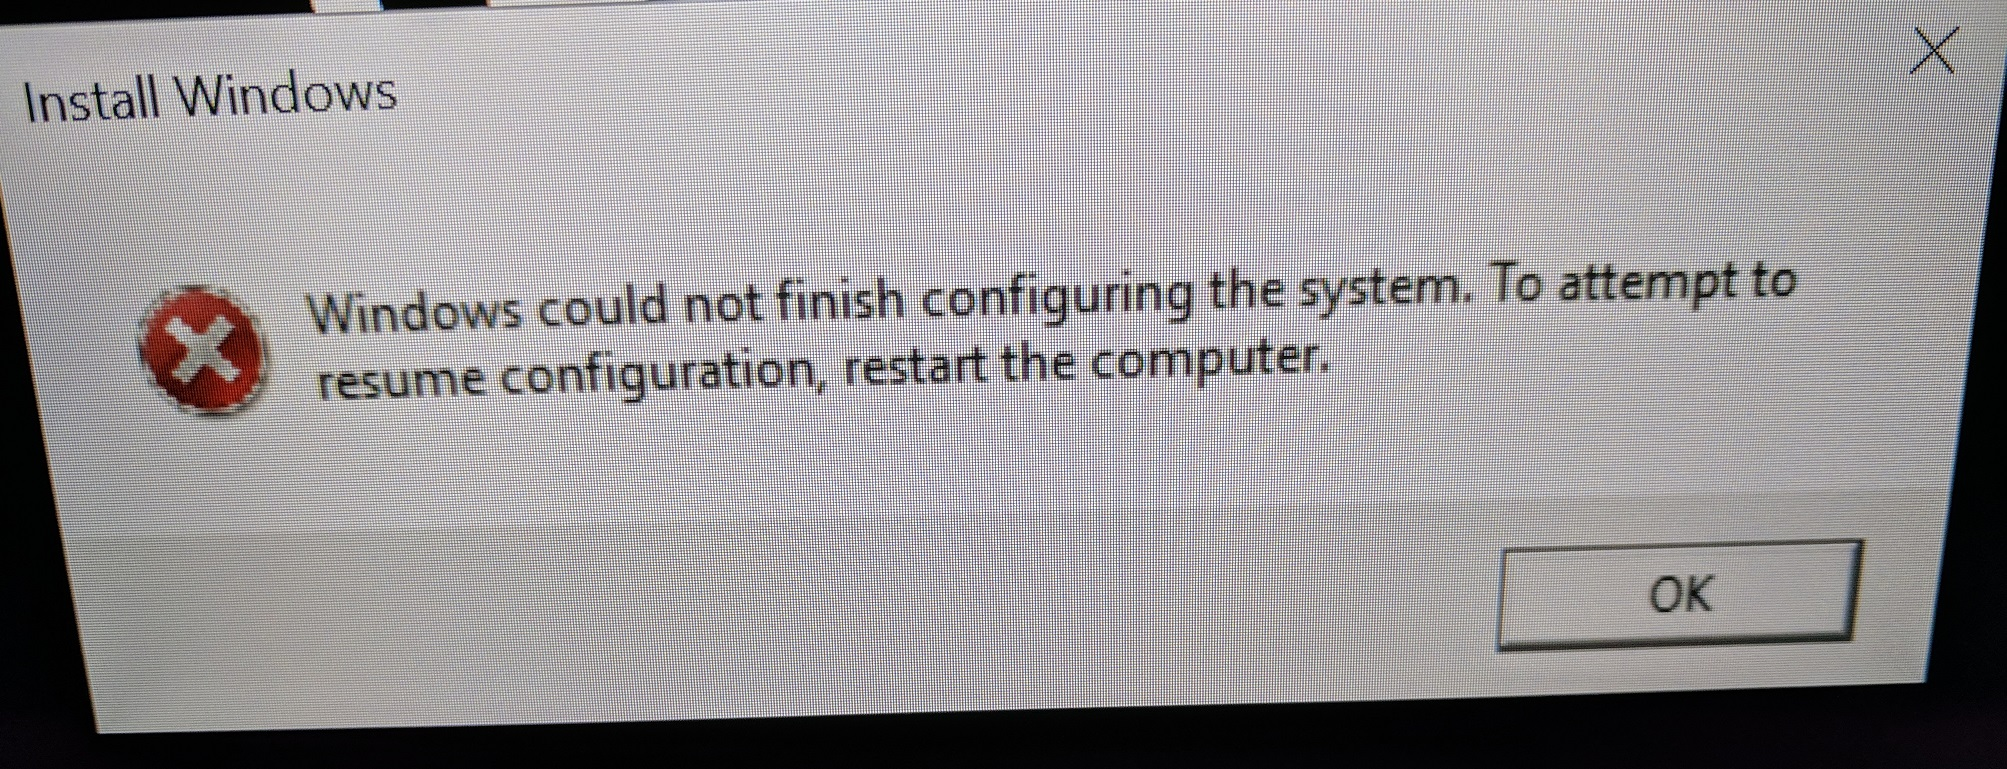 How do I fix this error after a sysprep and capture completes?